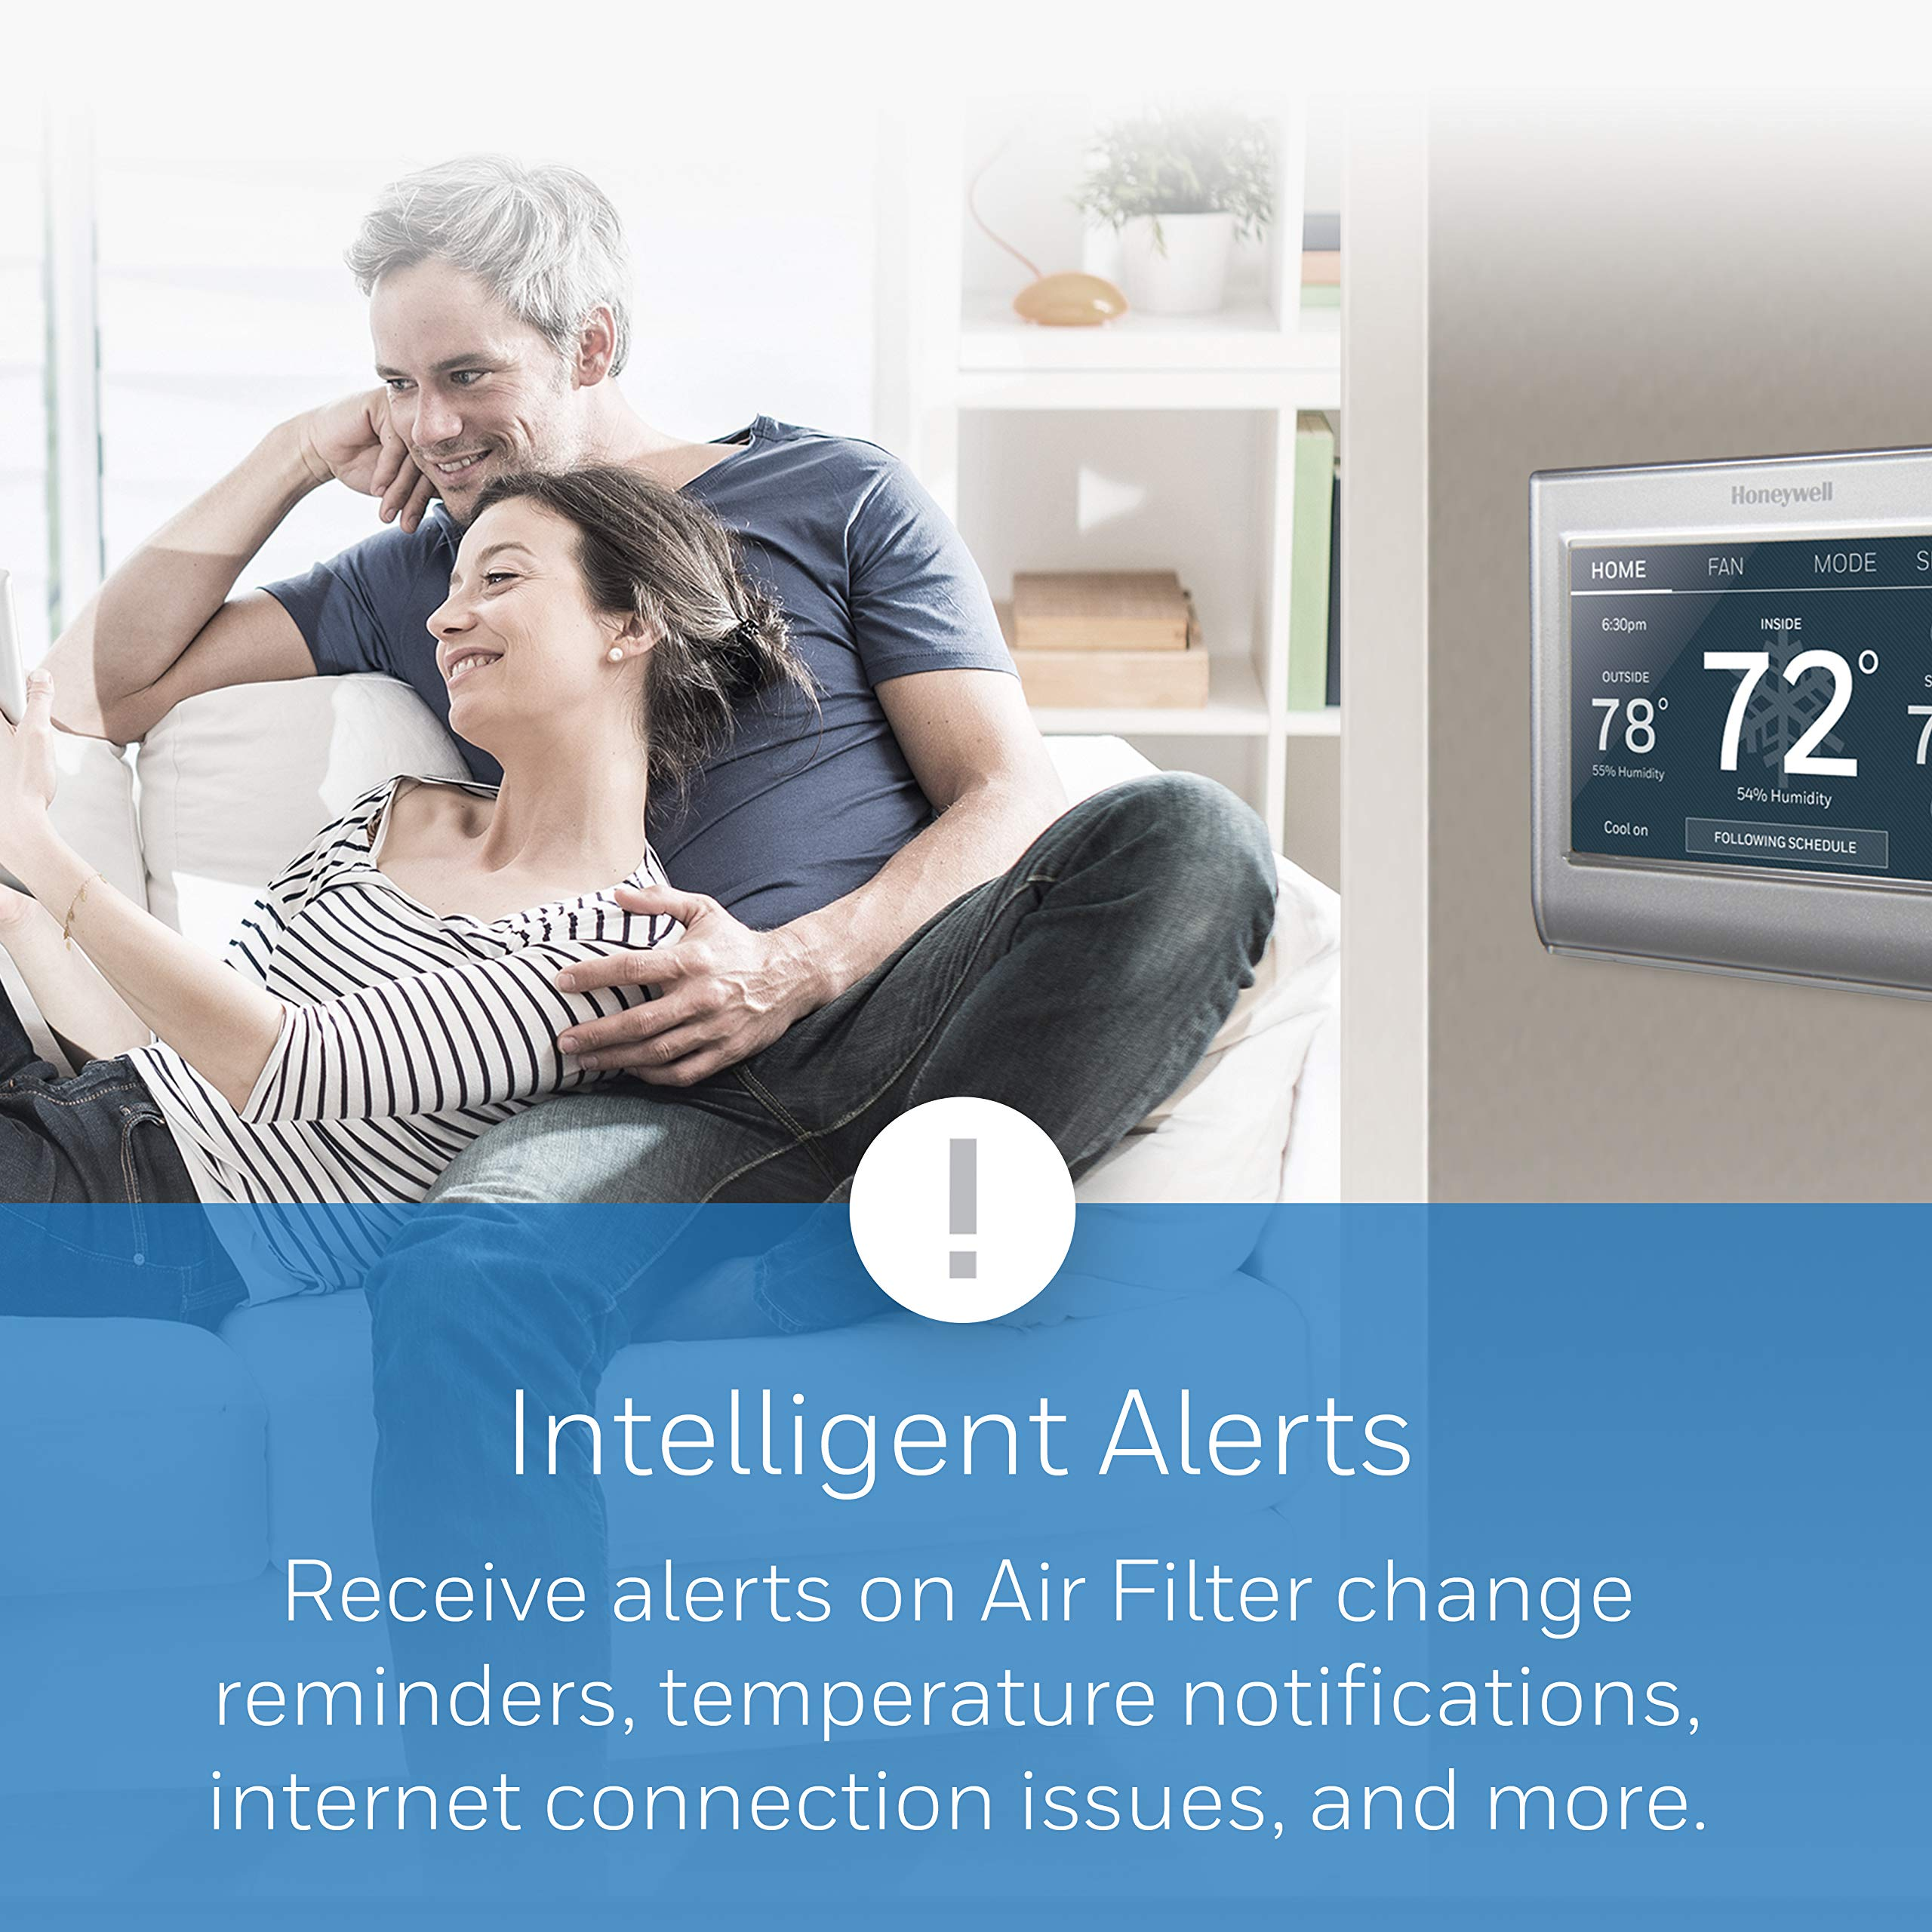 Honeywell Home Wi-Fi Smart Color Programmable Thermostat, Customizable Programming, Alexa and Apple Home Enabled, In-app Programming, Personalized Color Display, Easy Installation, (RTH9585WF1004) by Honeywell (Image #3)